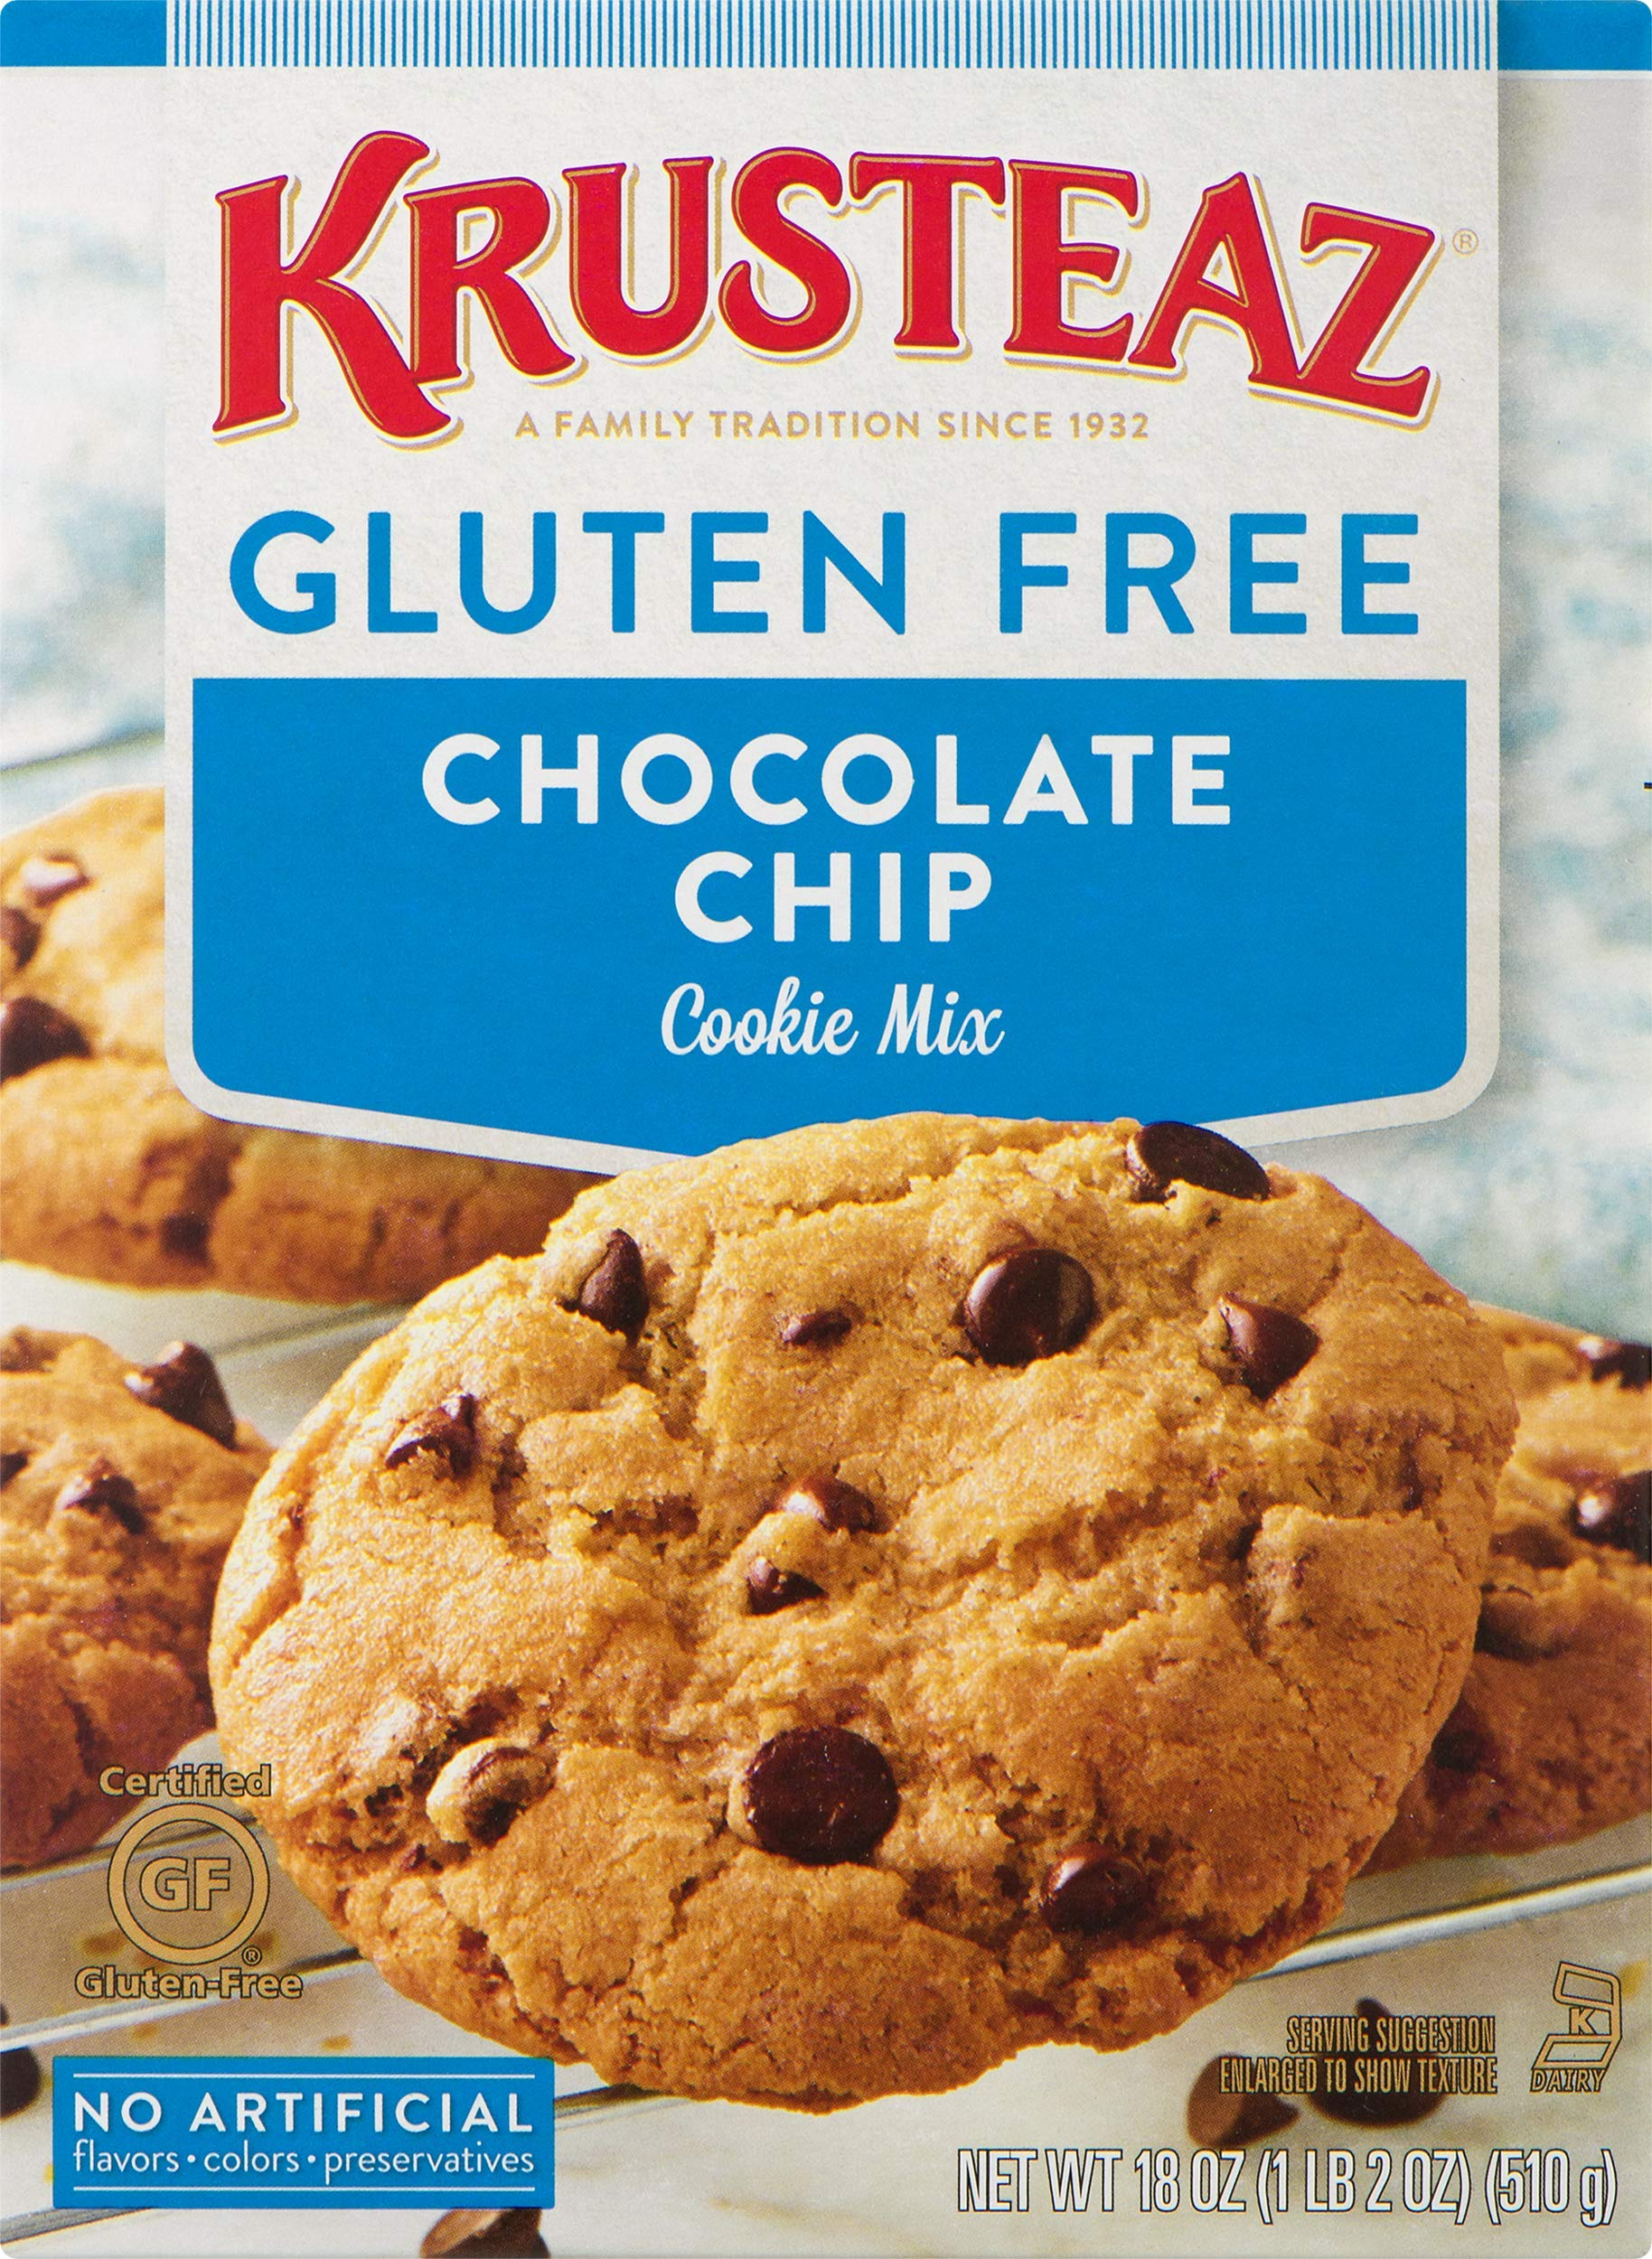 Krusteaz Gluten Free Chocolate Chip Cookie Mix, 18 Ounce, Pack of 8 by Krusteaz